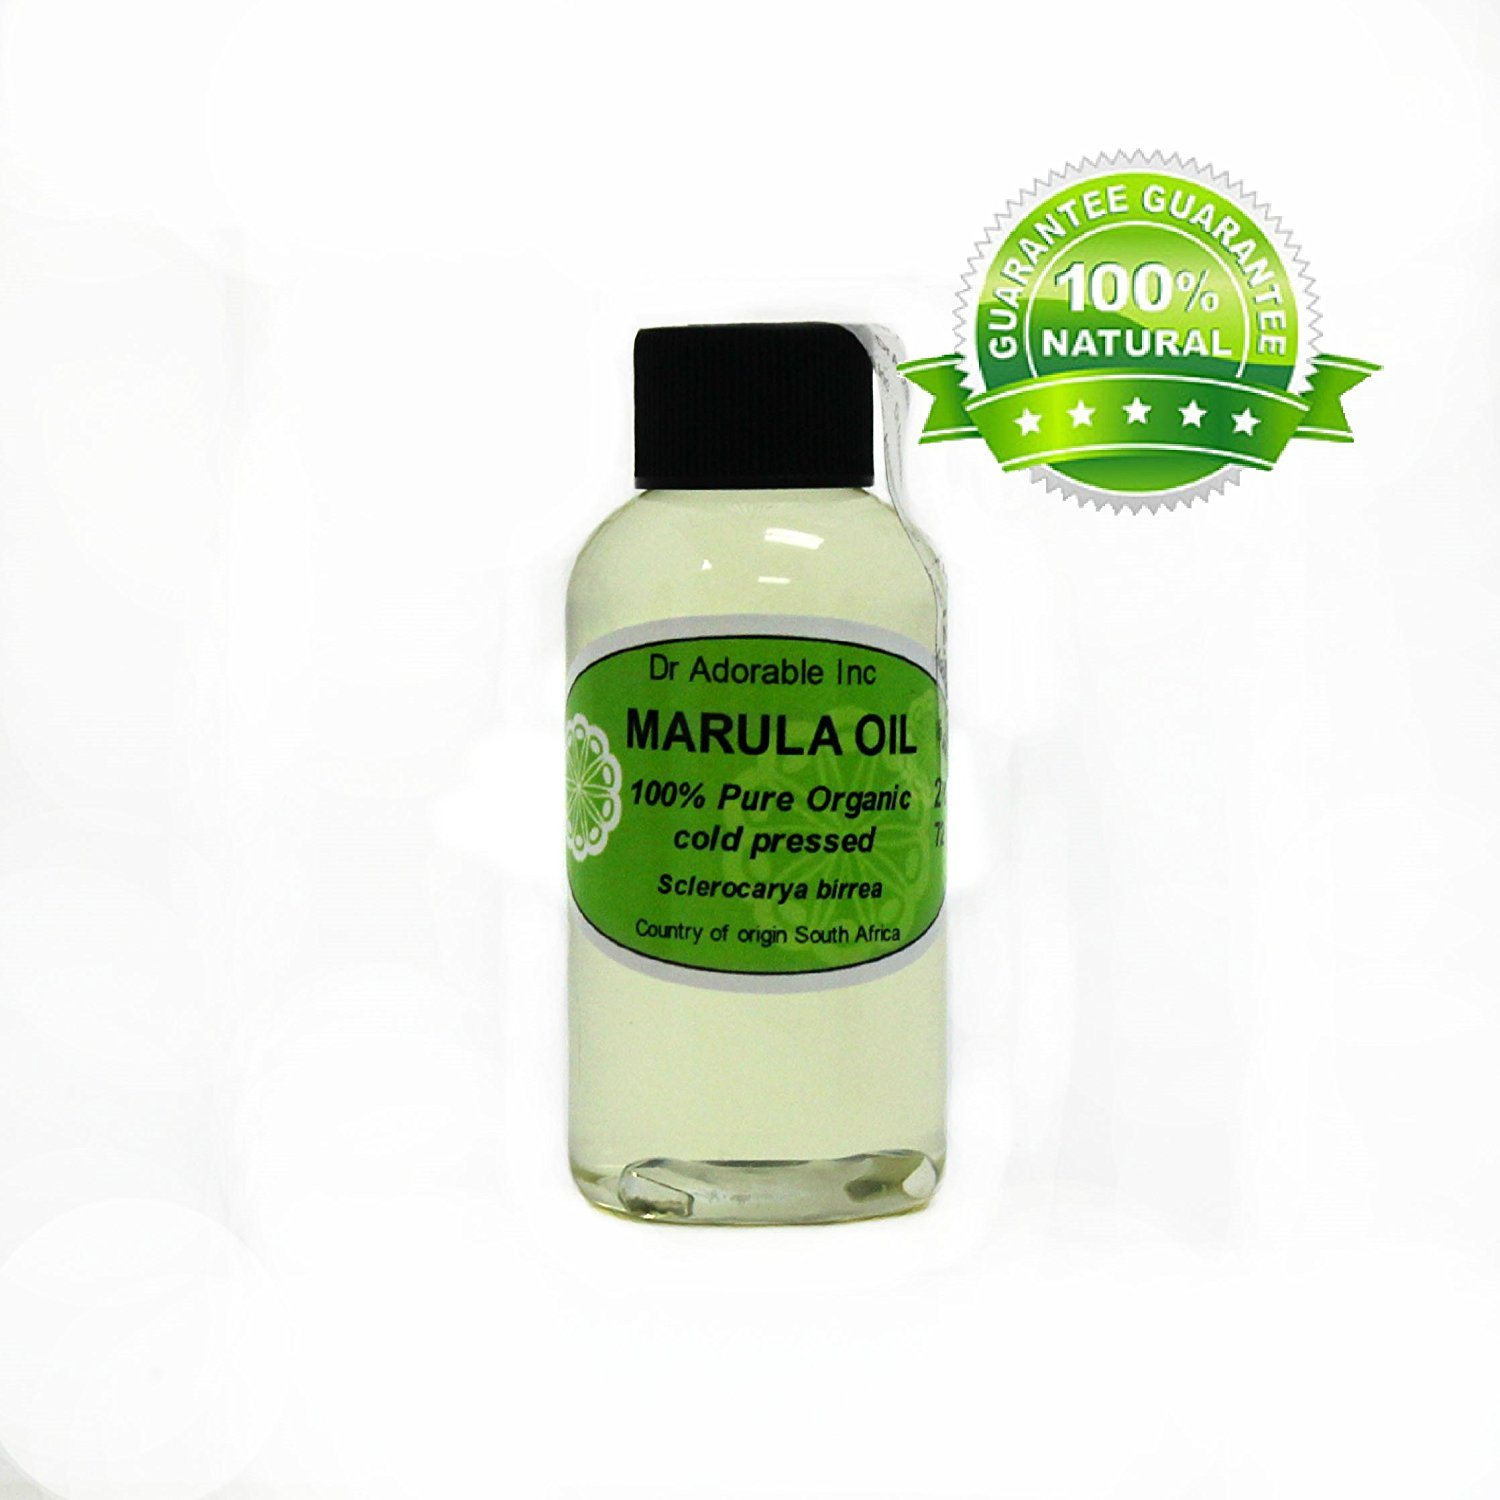 MARULA CARRIER OIL BY DR.ADORABLE 100% PURE ORGANIC COLD PRESSED 2 oz